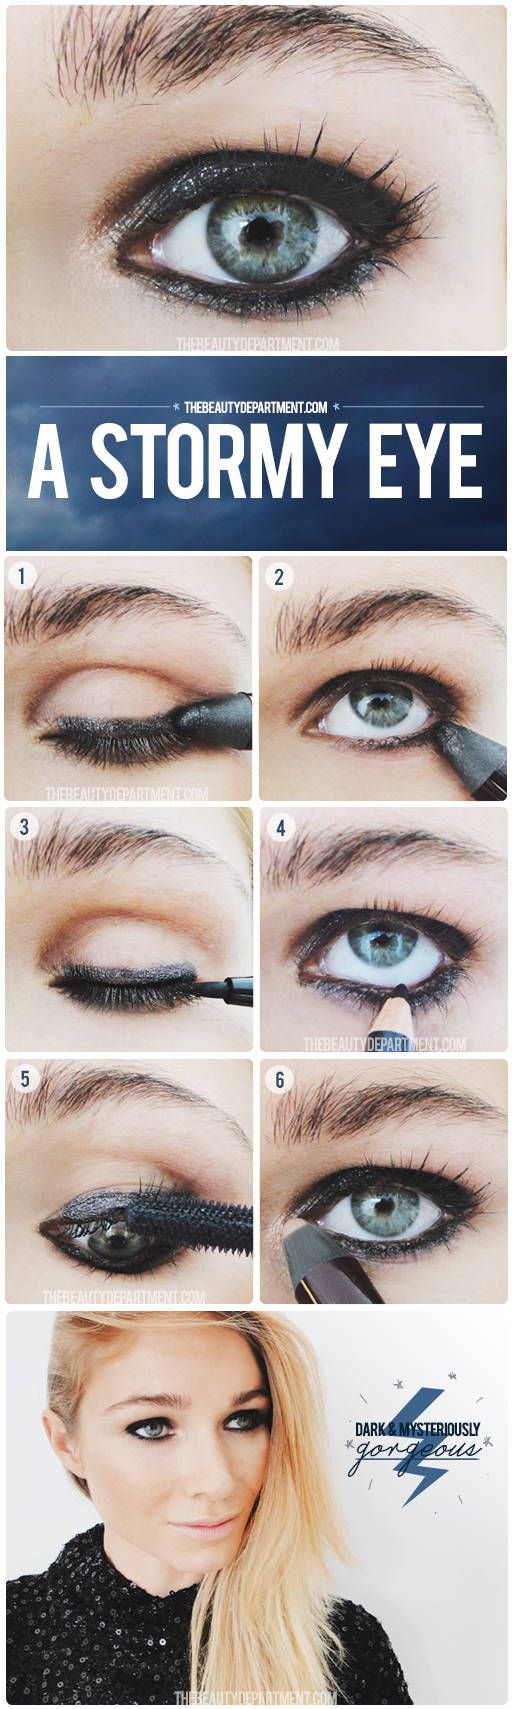 Stormy Eye- looks like dark gray pencil finished off with black pencil to make a easy as pie, eye. Temple Tabone